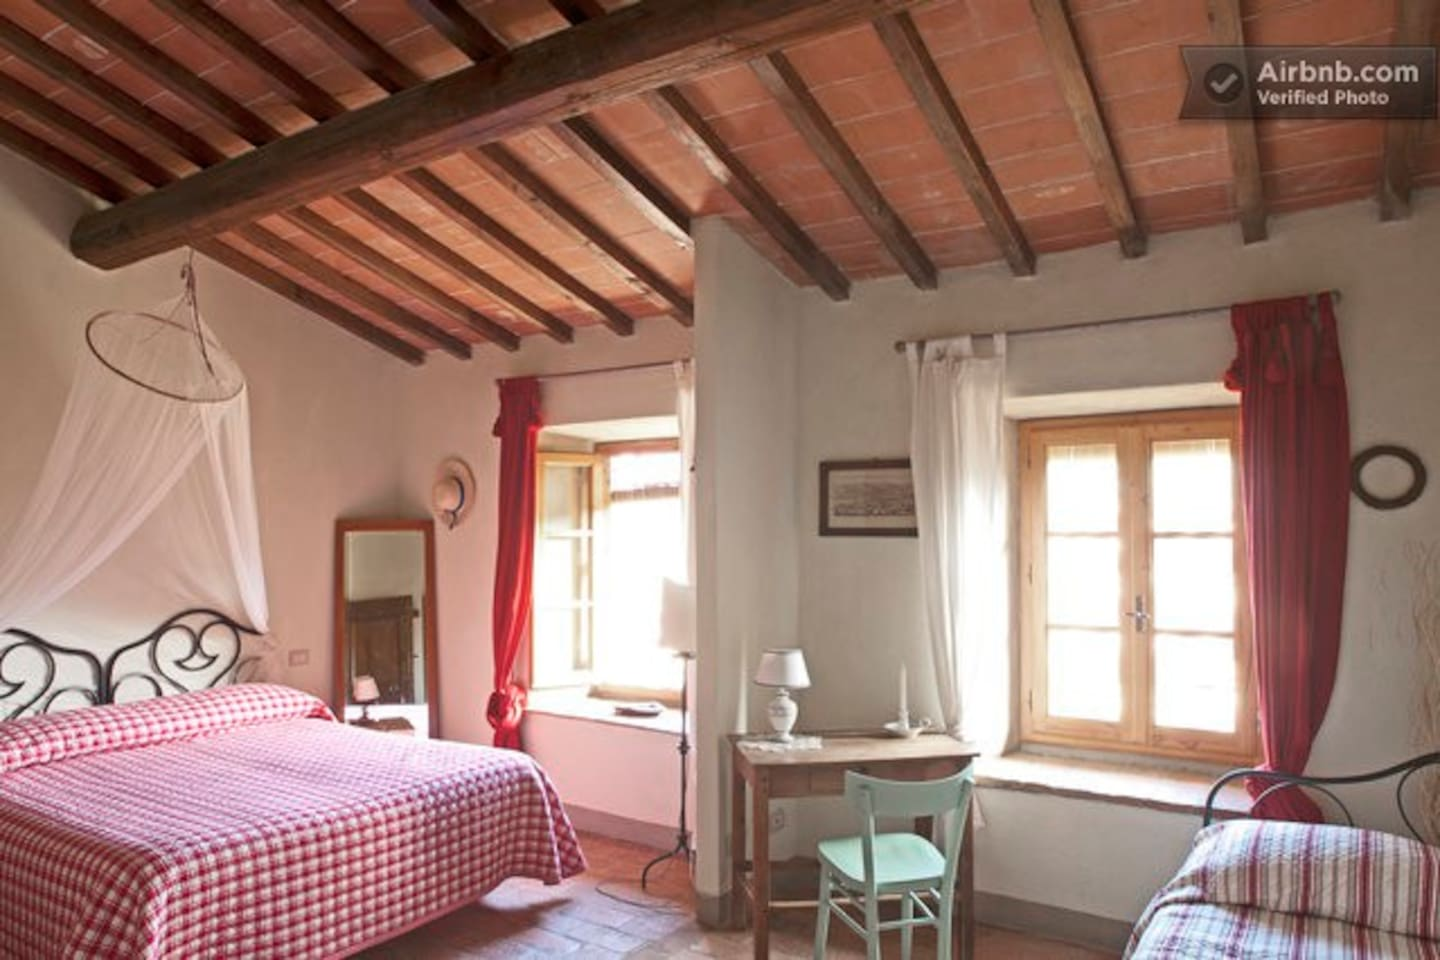 Firenze x 3- Country room - jacuzzi